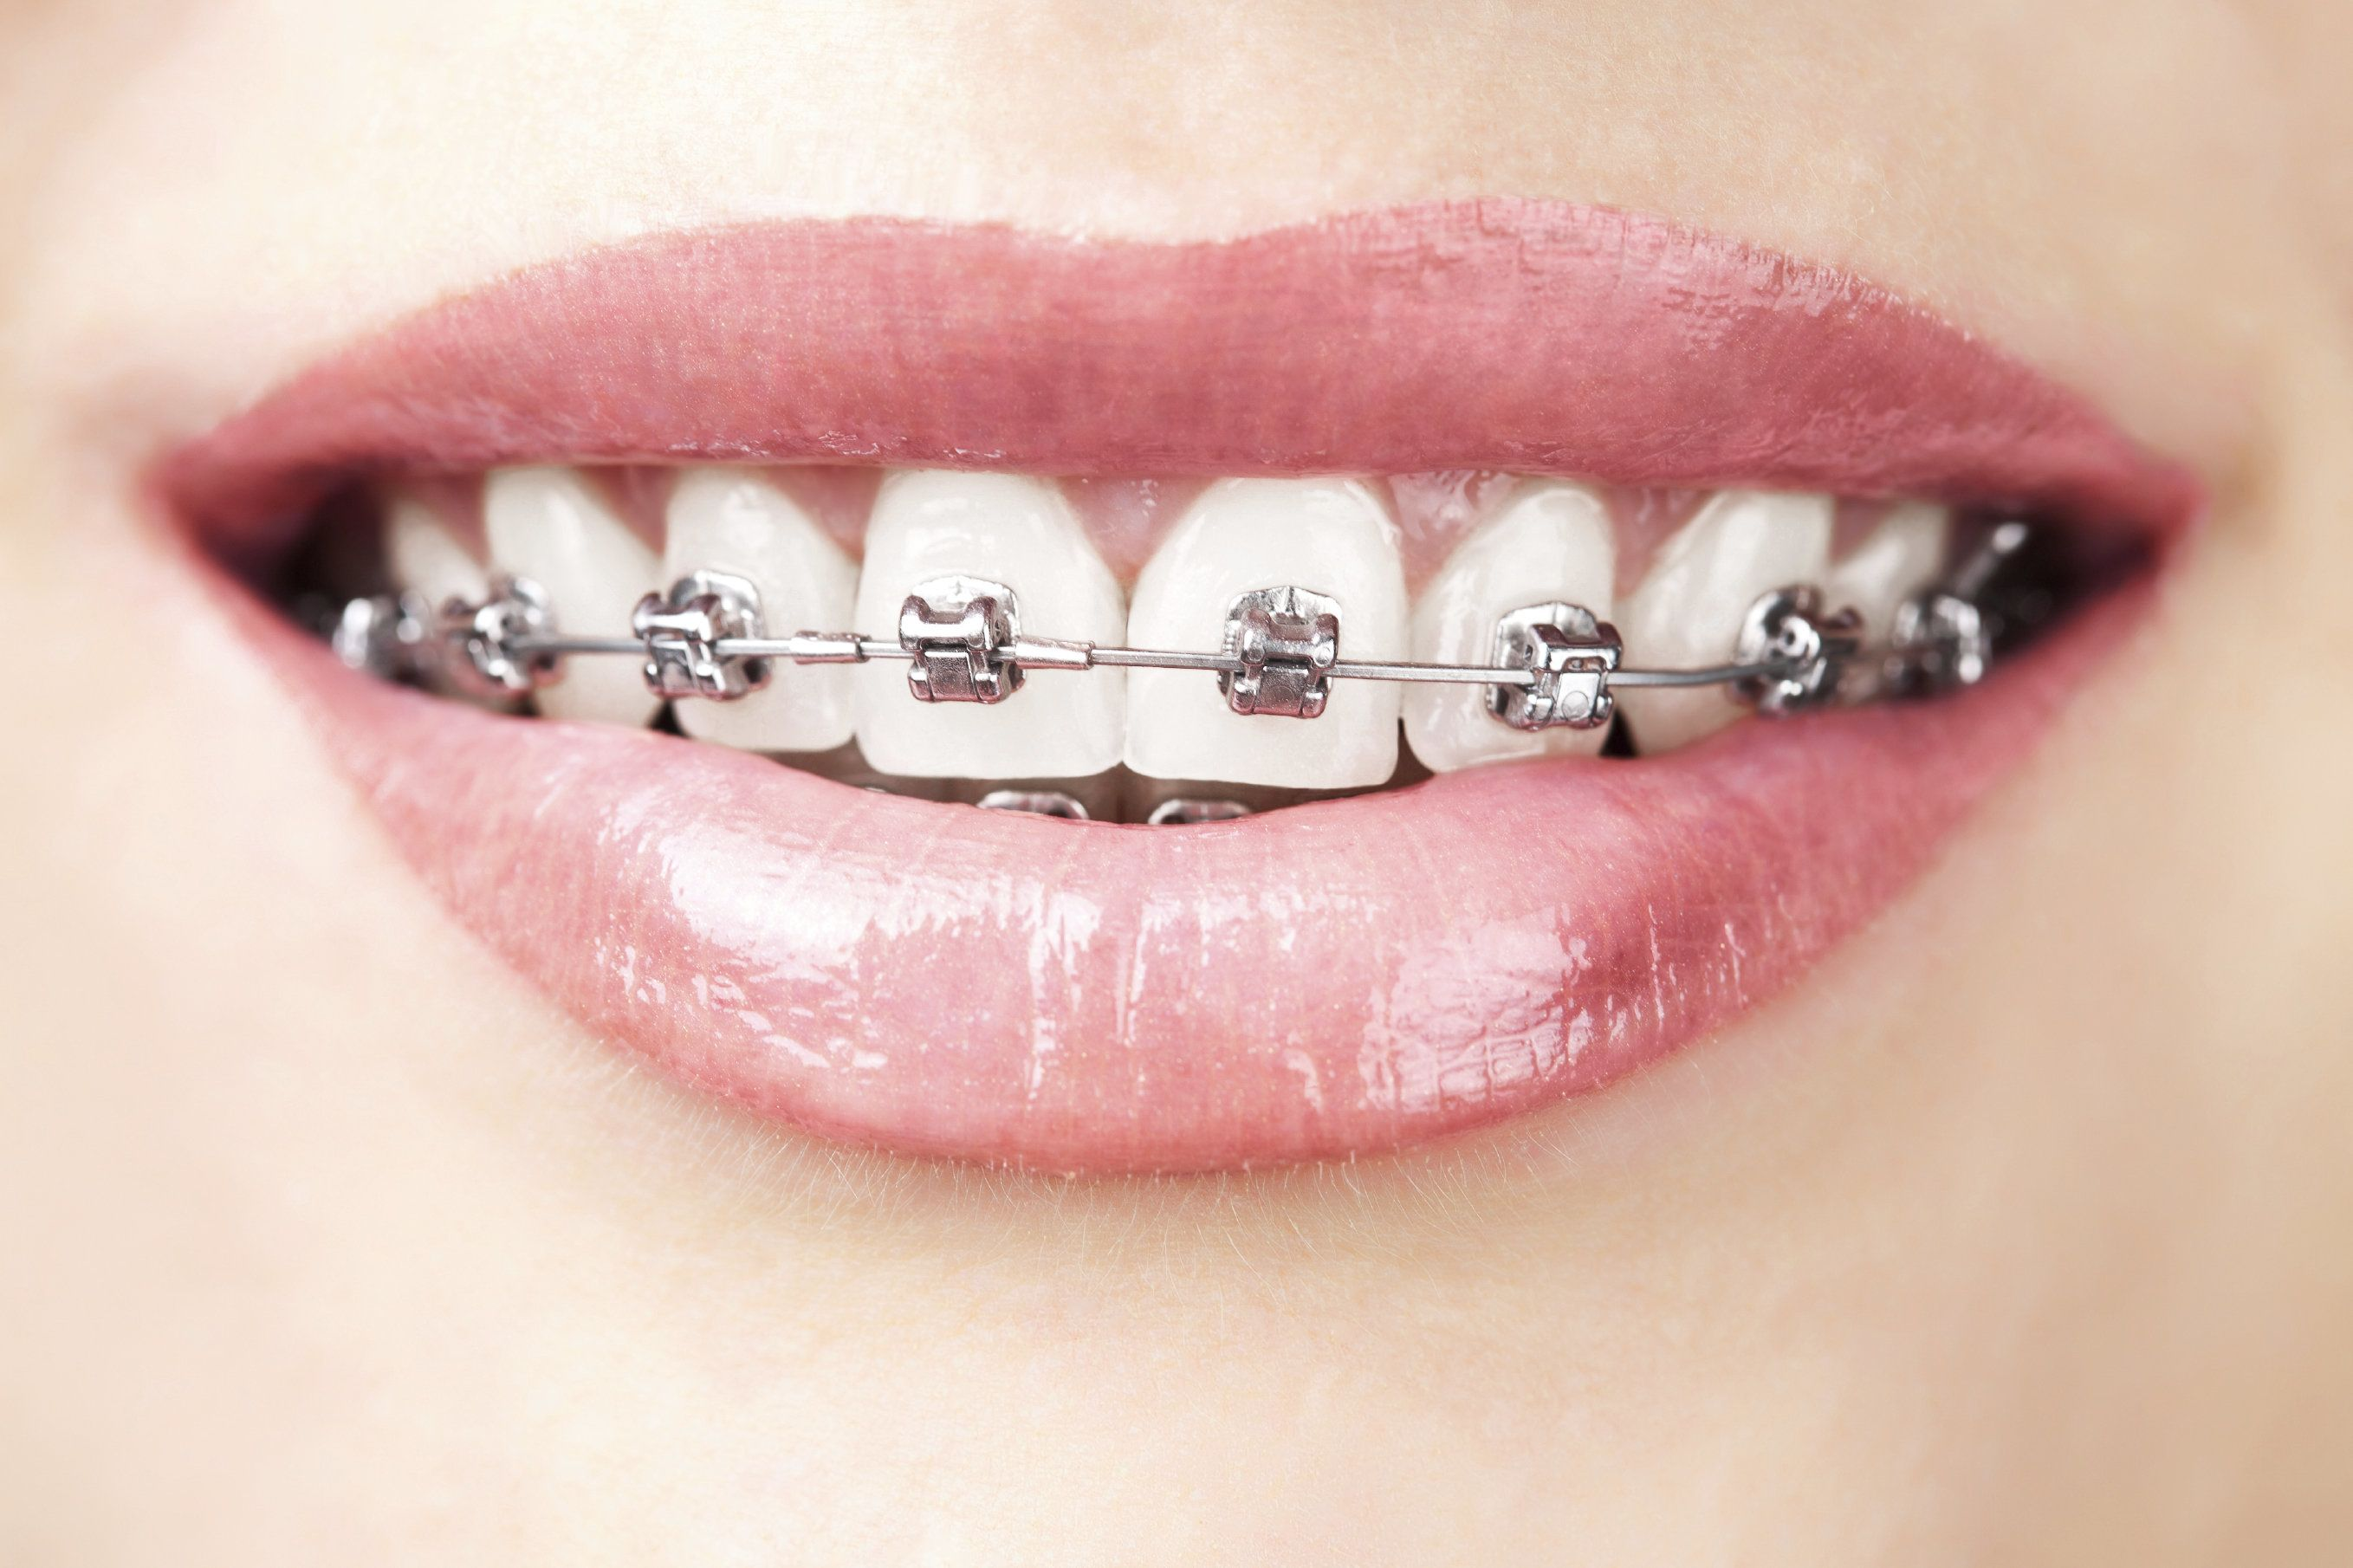 Braces on a set of teeth